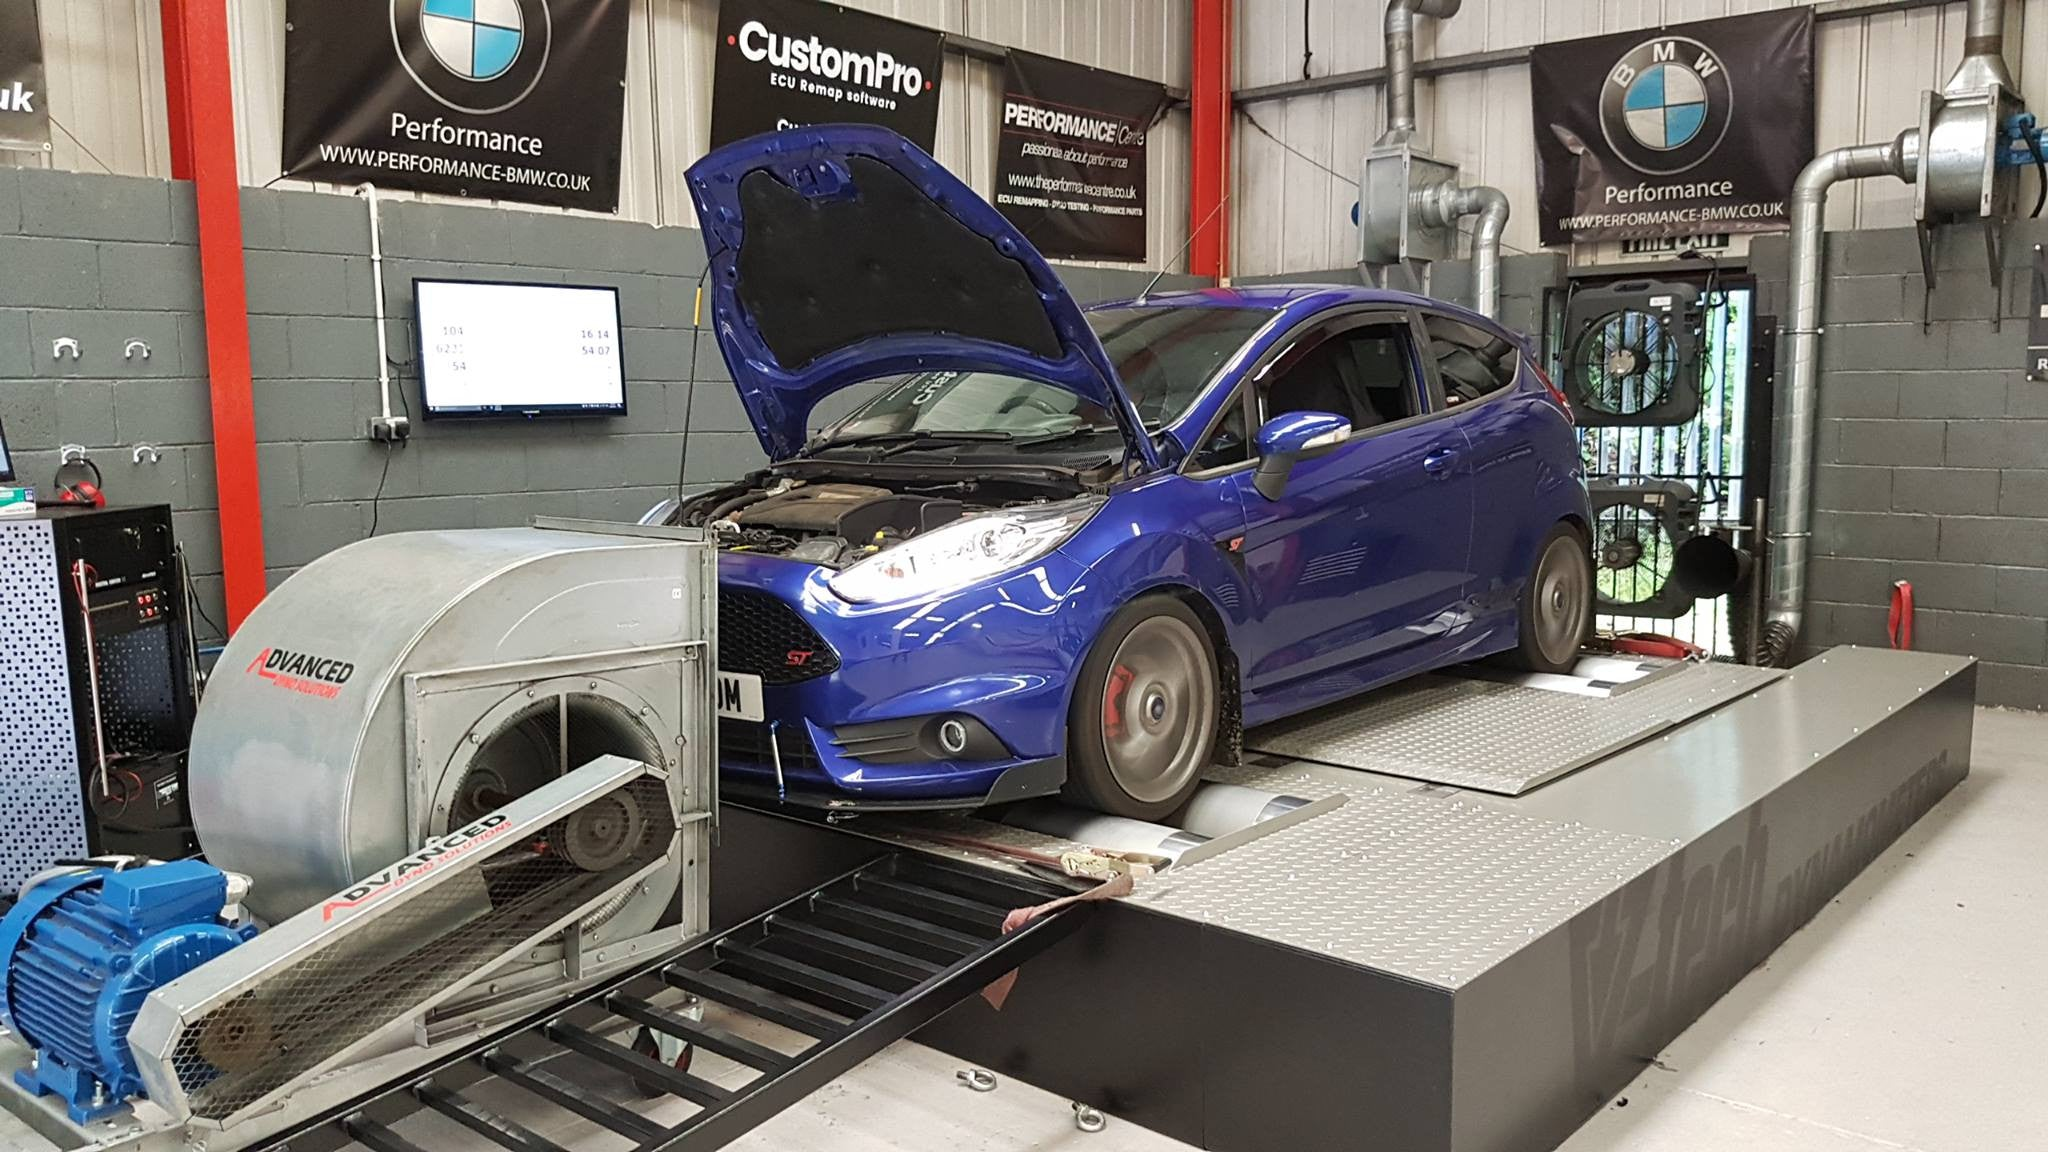 Ford Fiesta ST - CustomPro remap & Revo intake